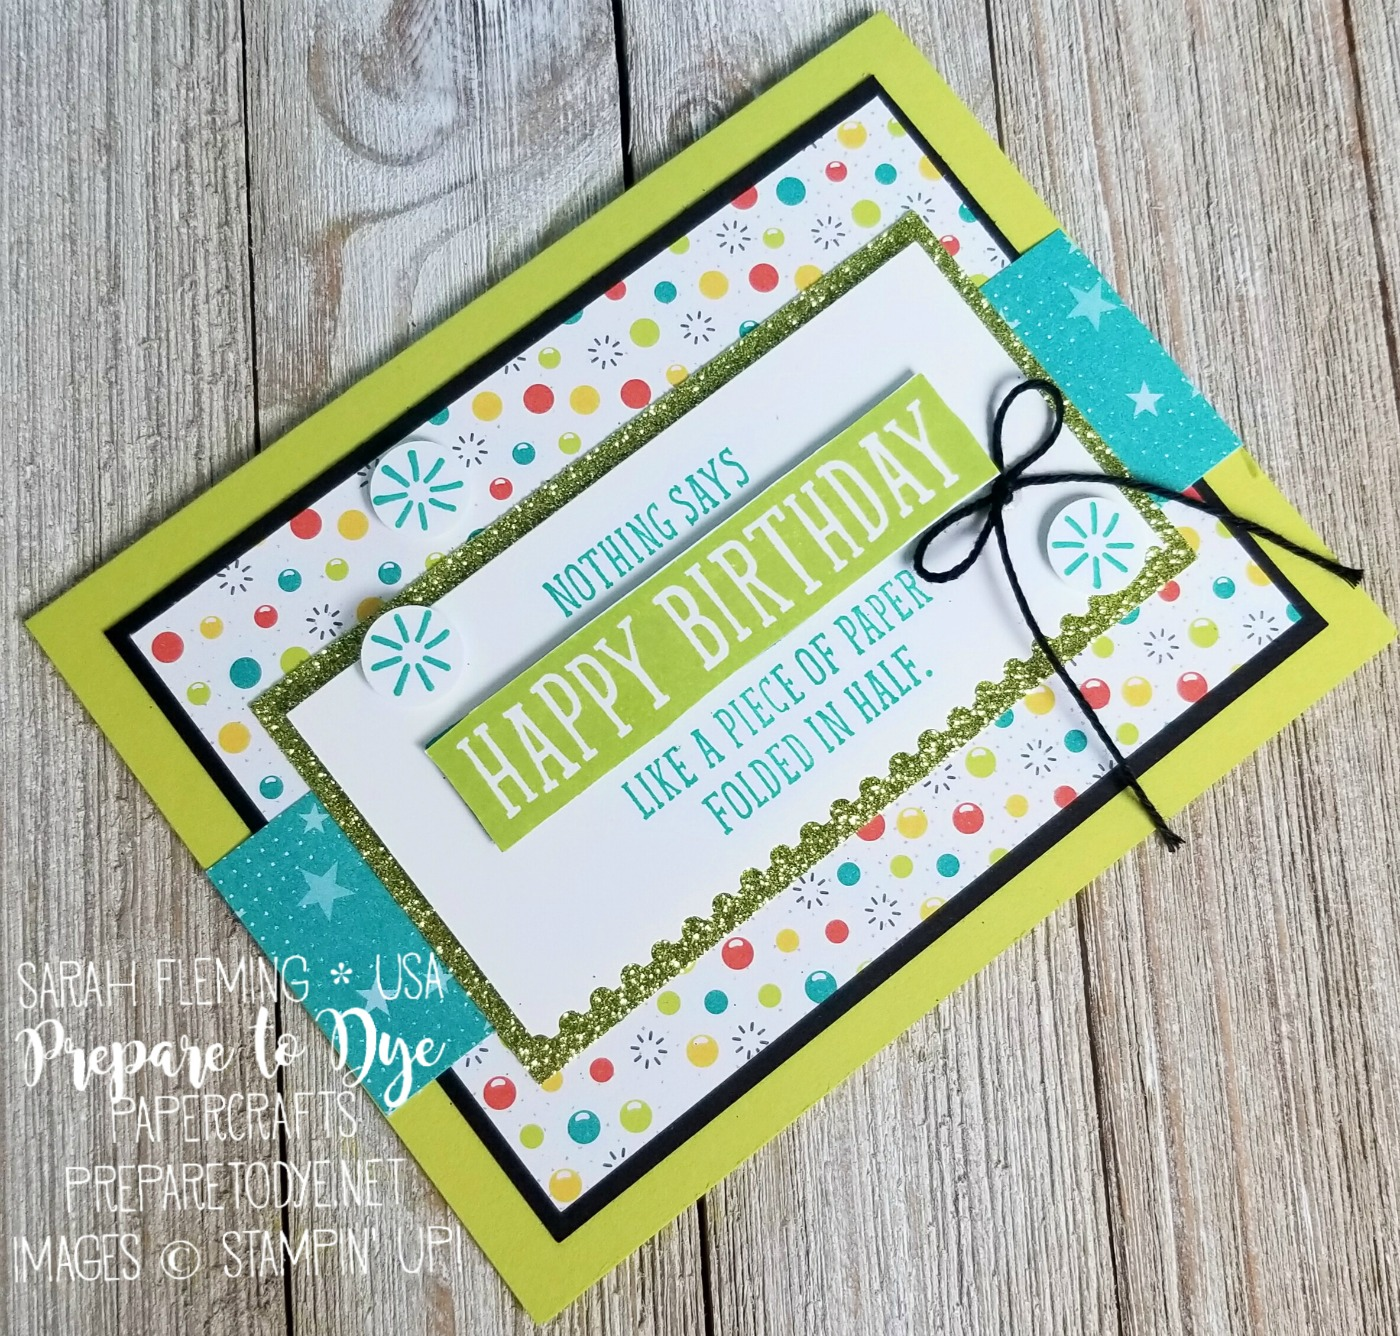 Stampin' Up! Birthday Wit, Bubbles & Fizz paper, Myths & Magic Glimmer Paper - handmade birthday card - Sarah Fleming - Prepare to Dye Papercrafts